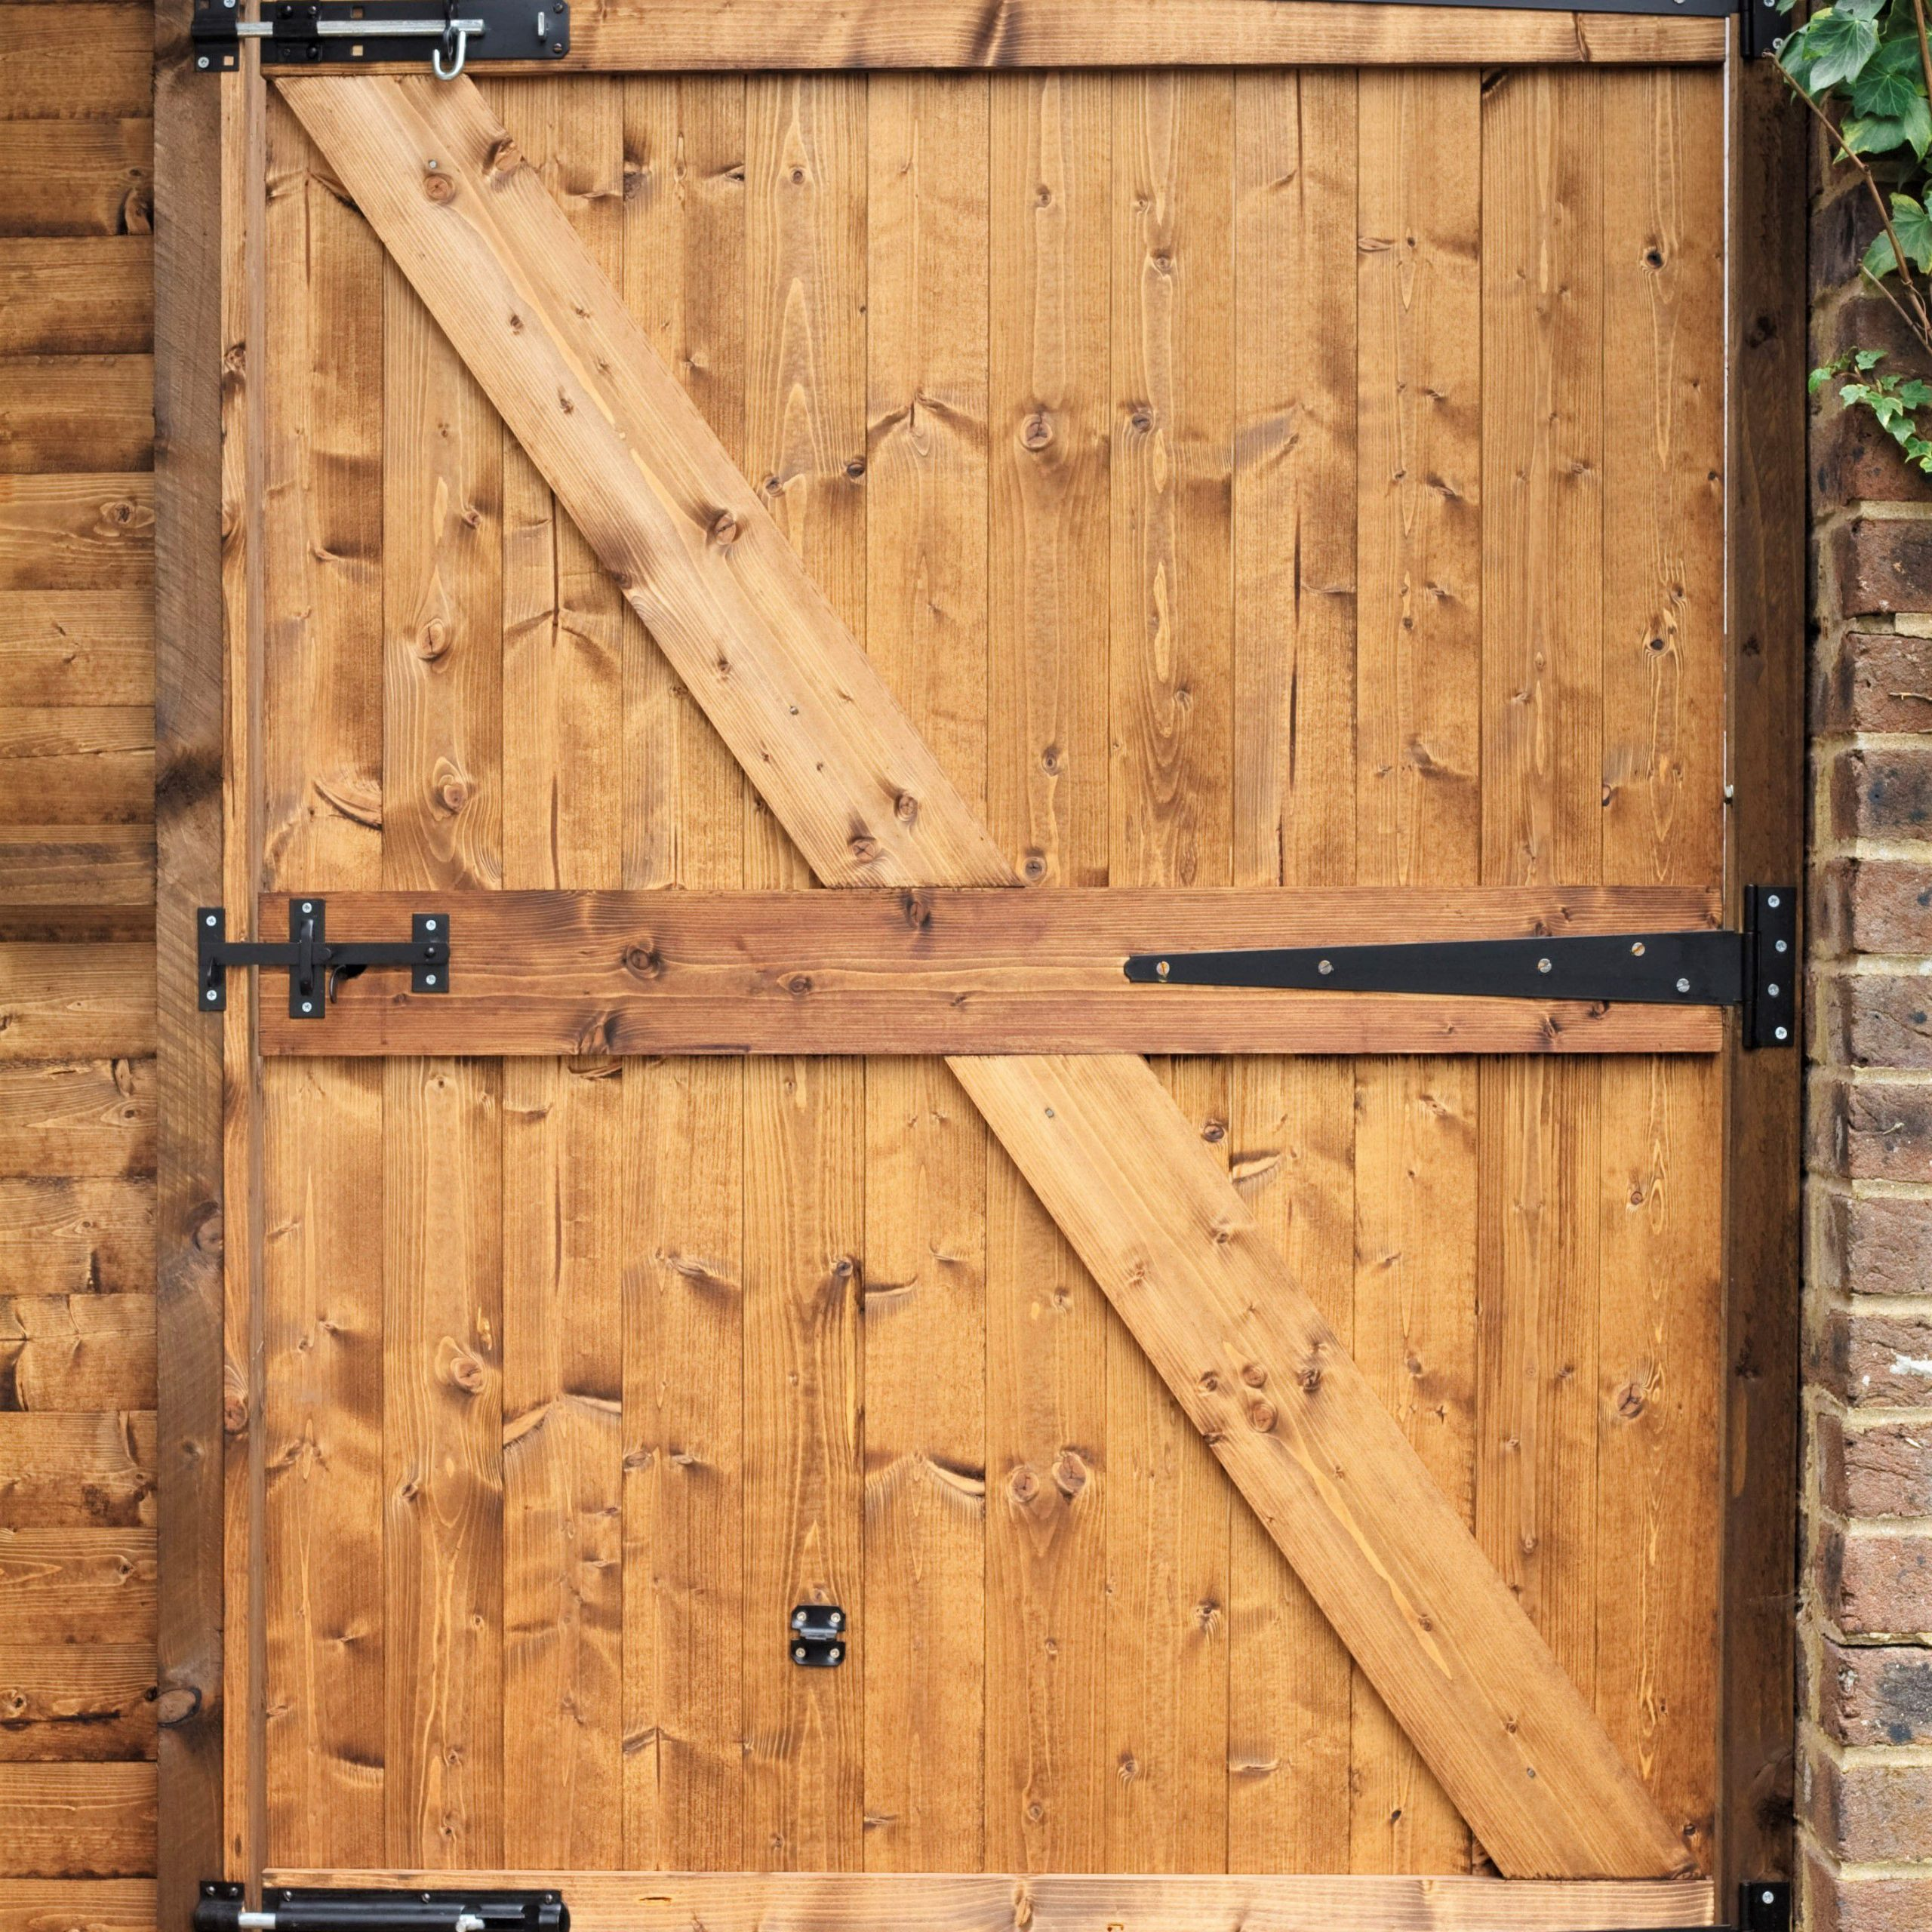 How To Build A Wooden Gate For Your Yard Pertaining To A4 Ft Cedar Pergola Swings (Image 16 of 25)